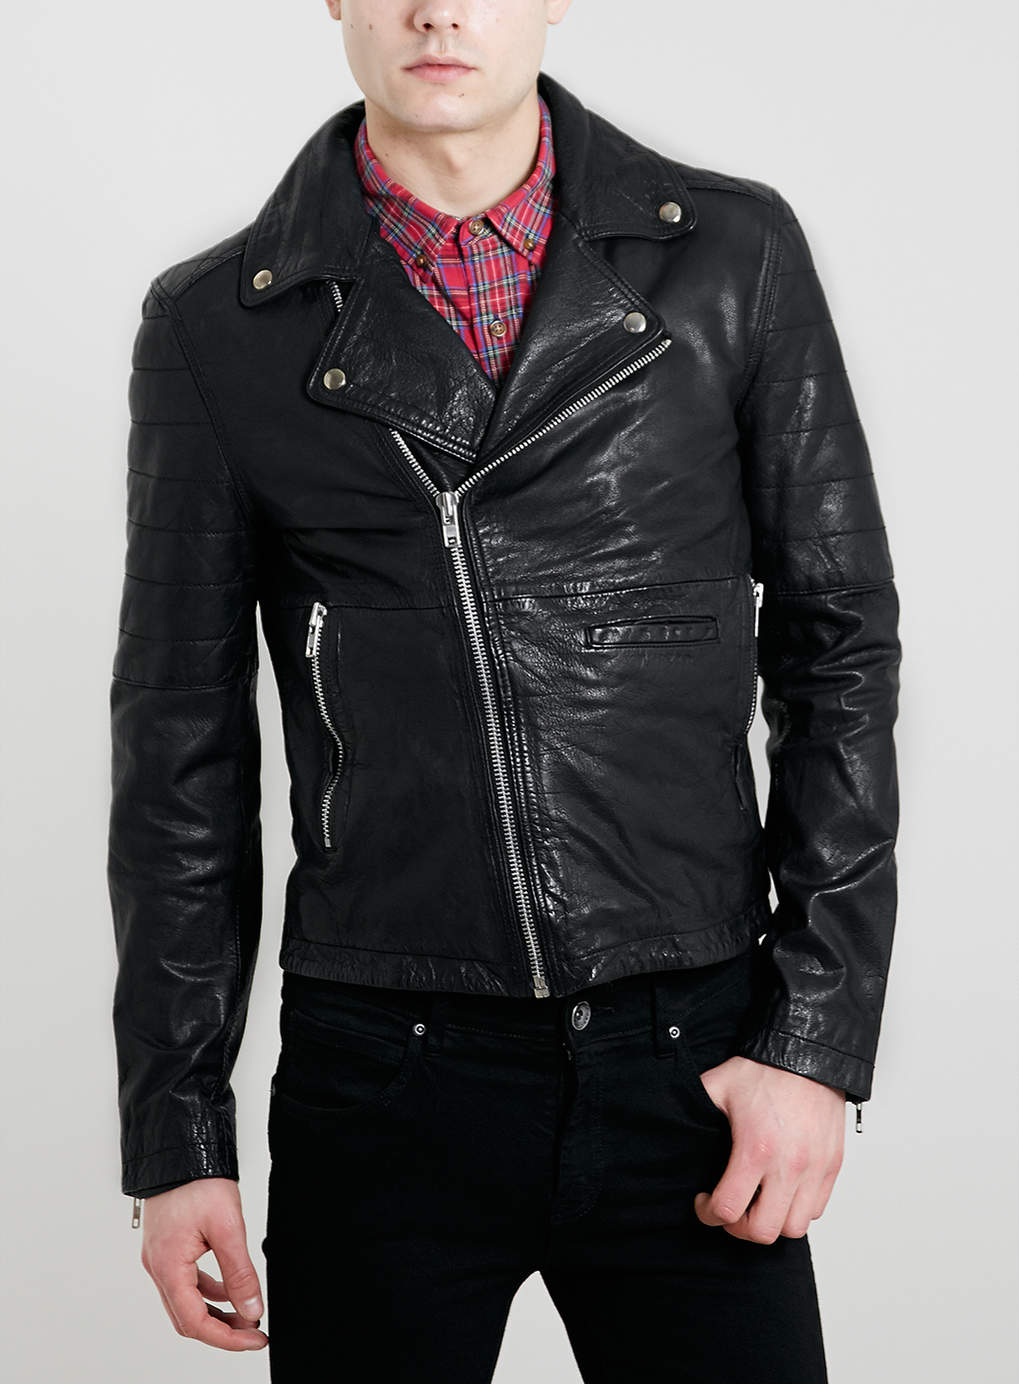 There's no need to spend a fortune on dry cleaning a leather jacket if it's dirty or stained. Here are some solutions from DIY Network for making your leather jacket look as good as new.